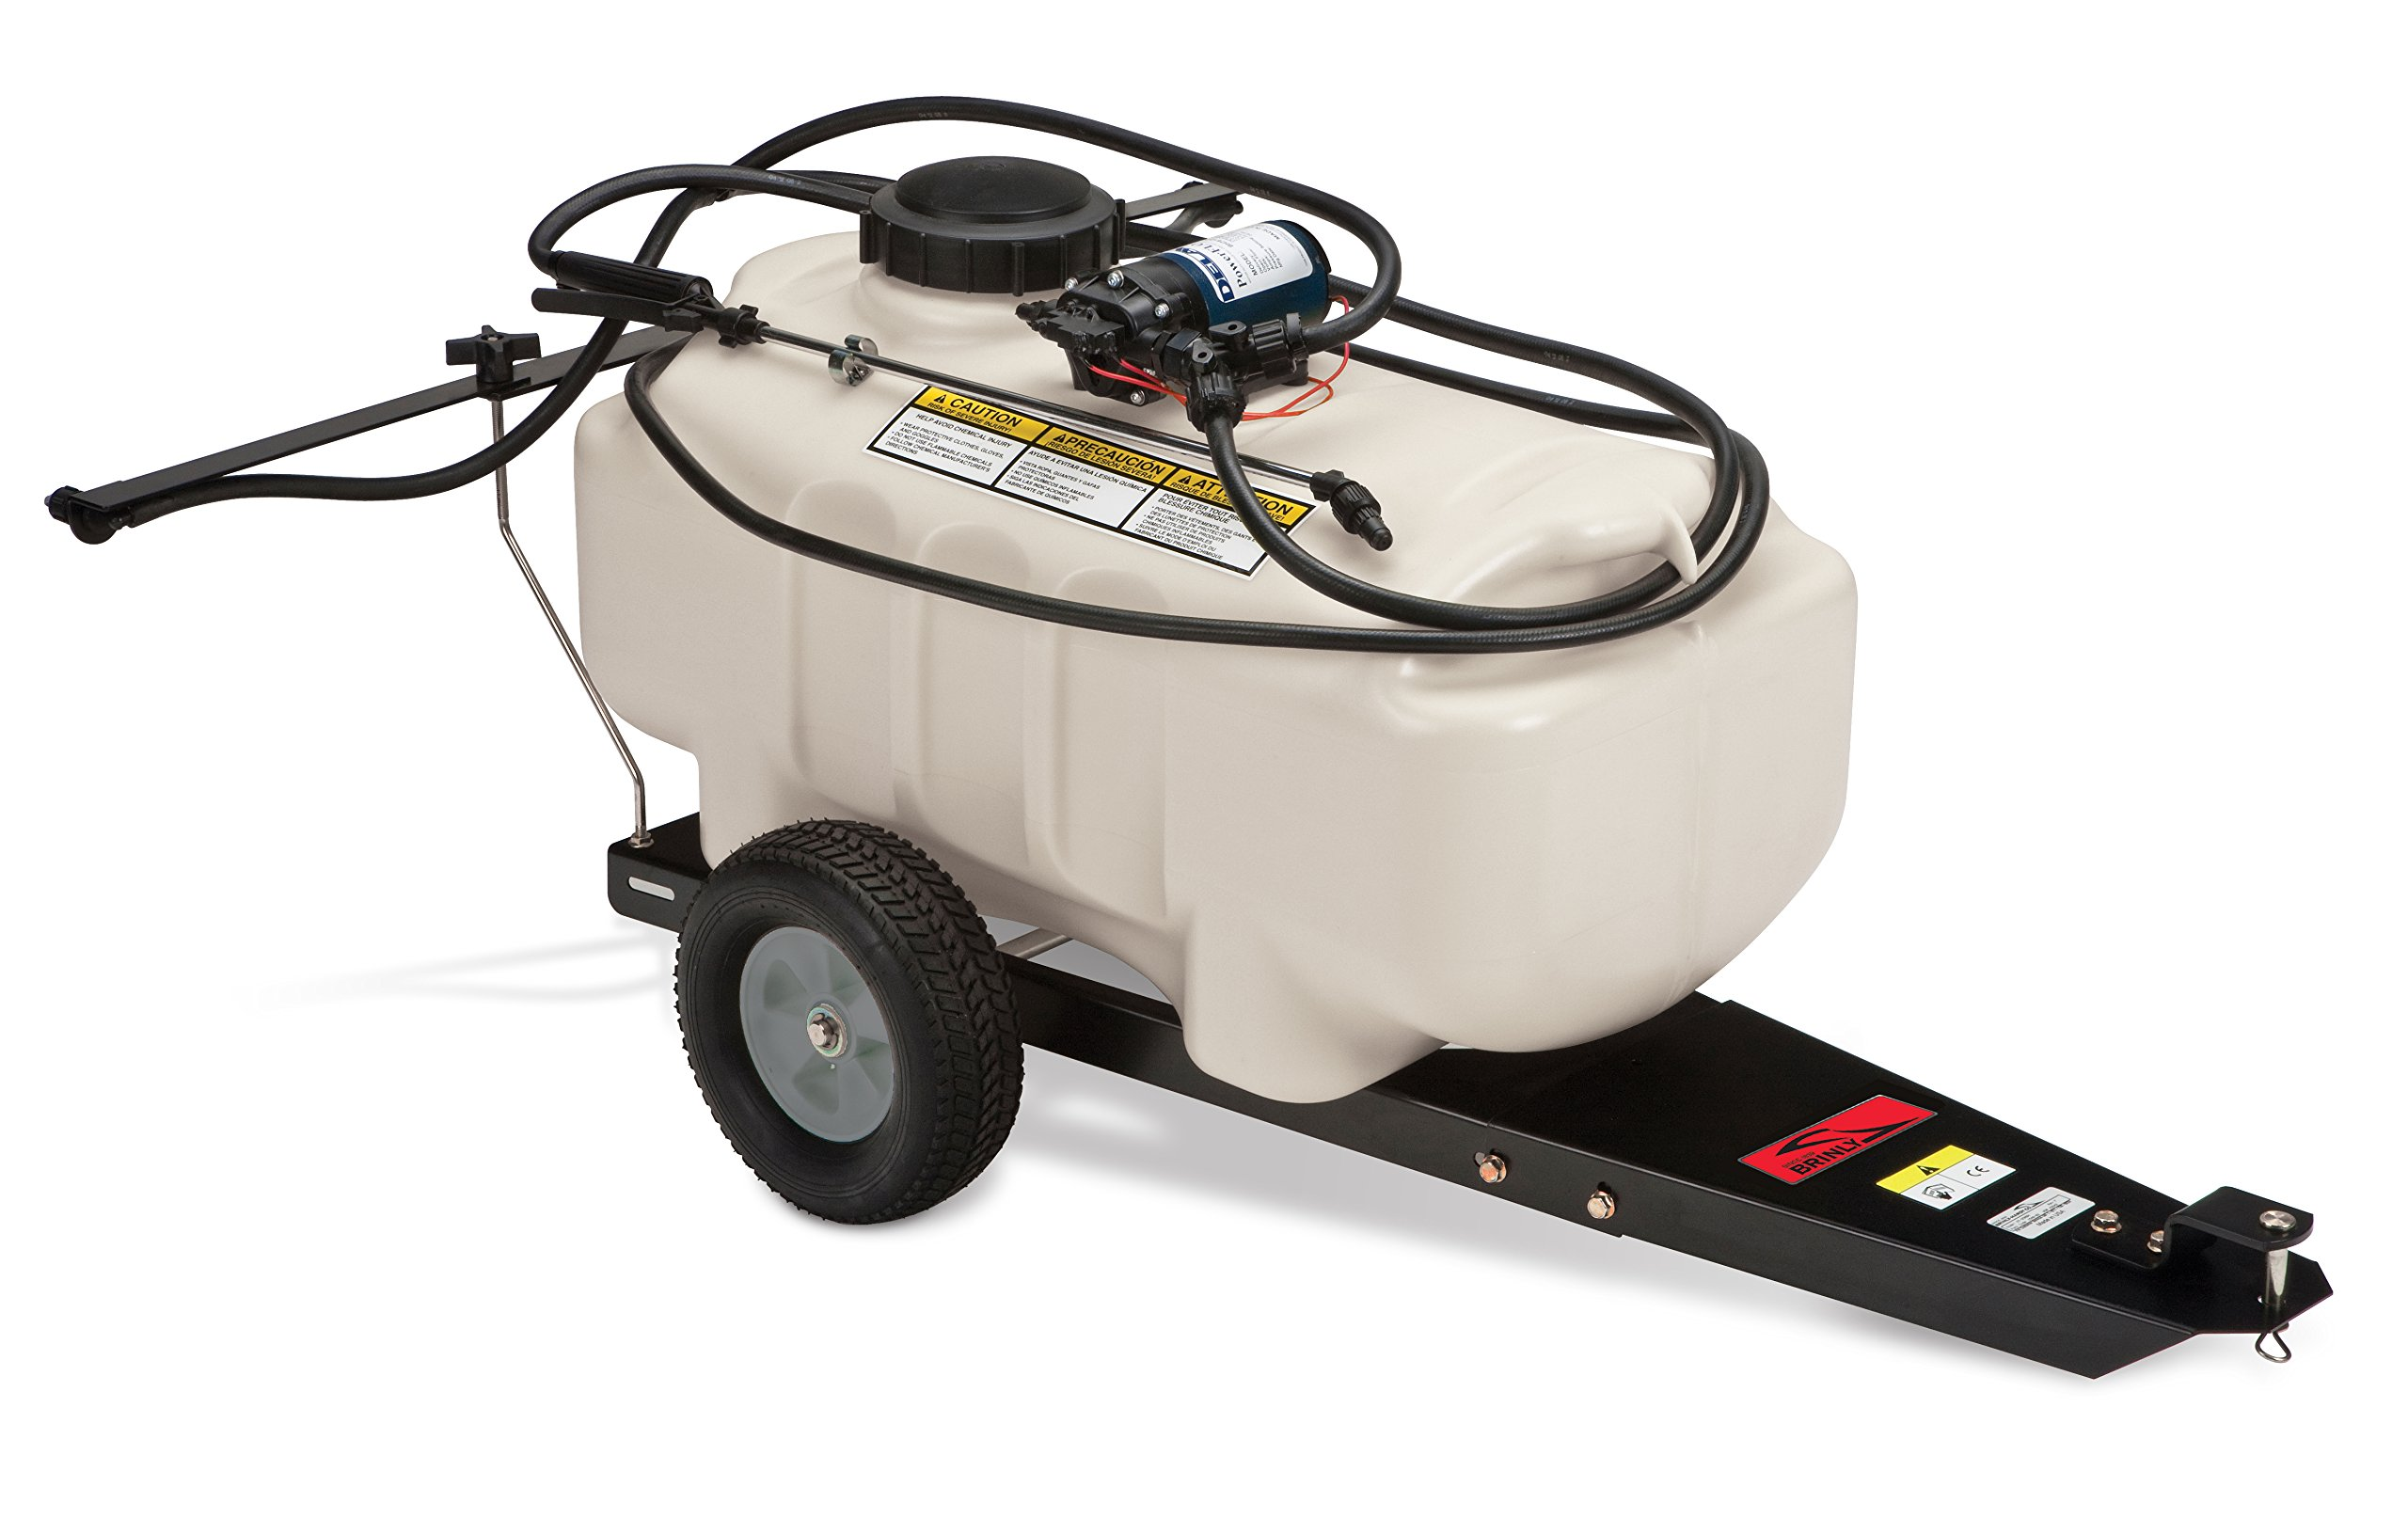 Brinly ST-25BH Tow Behind Lawn and Garden Sprayer, 25-Gallon